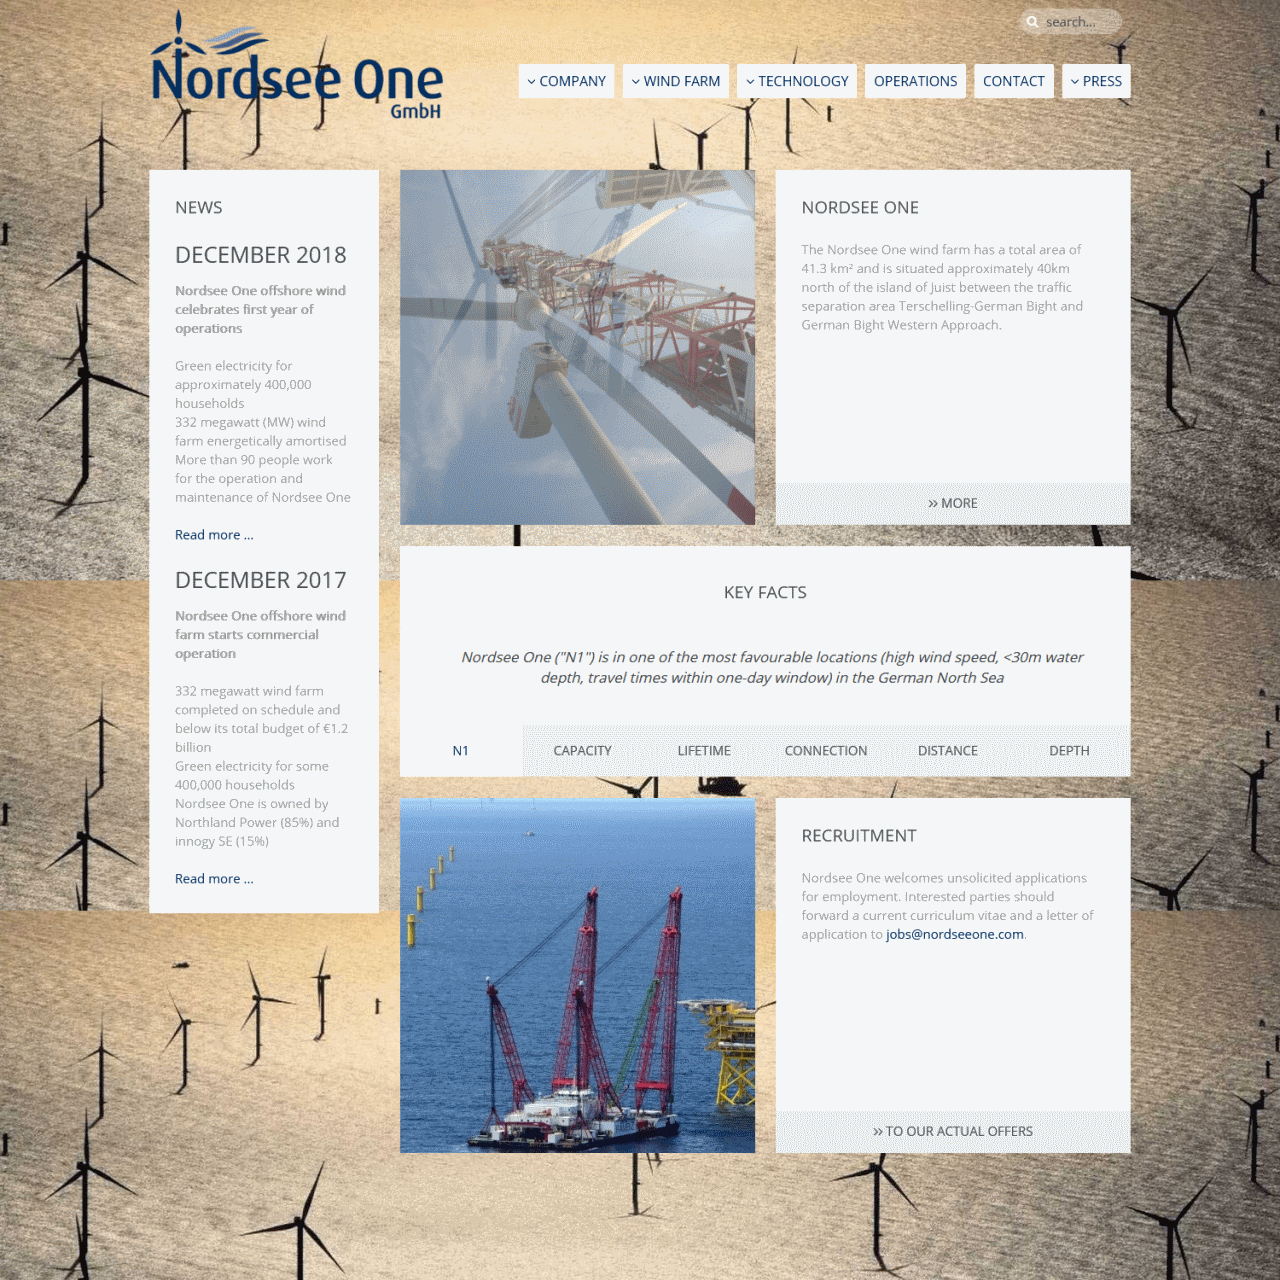 Nordsee One GmbH